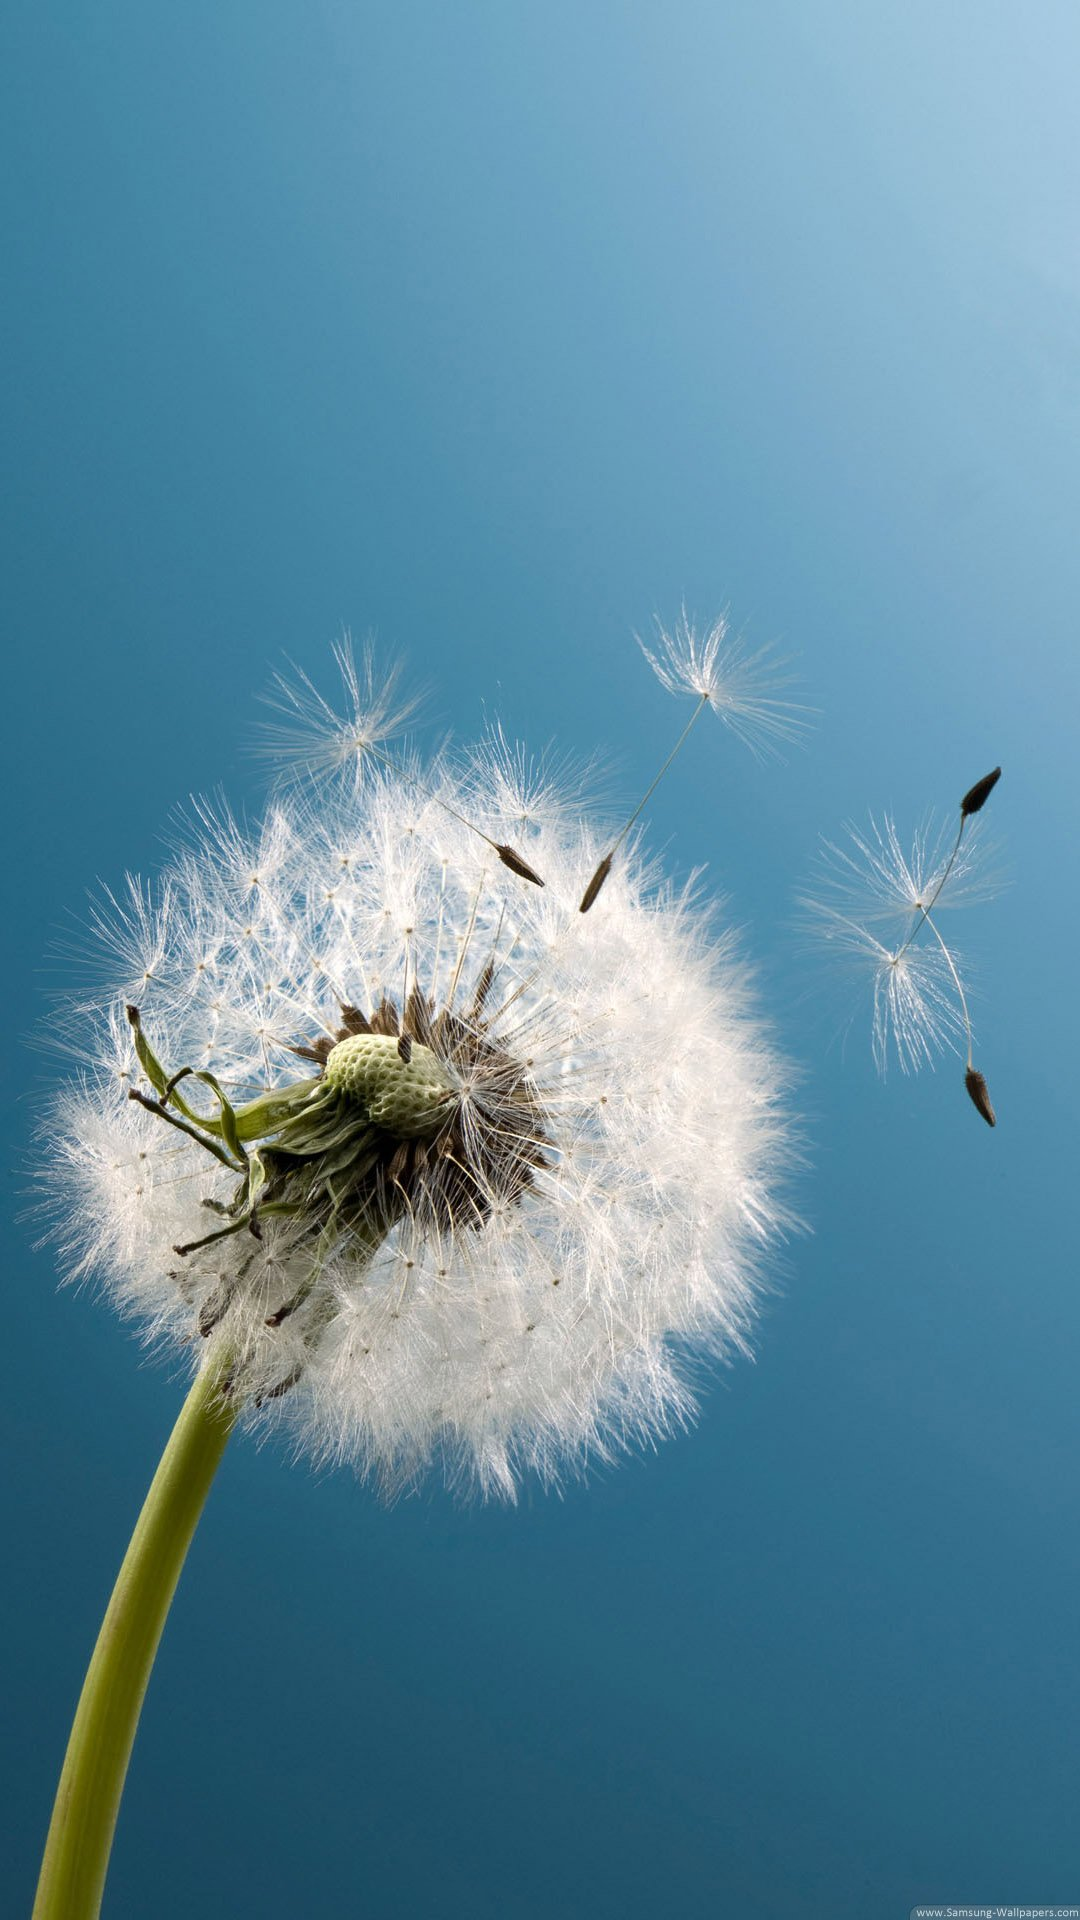 Dandelion 1080x1920 Samsung Galaxy S4 Wallpaper HD Samsung Wallpapers 1080x1920